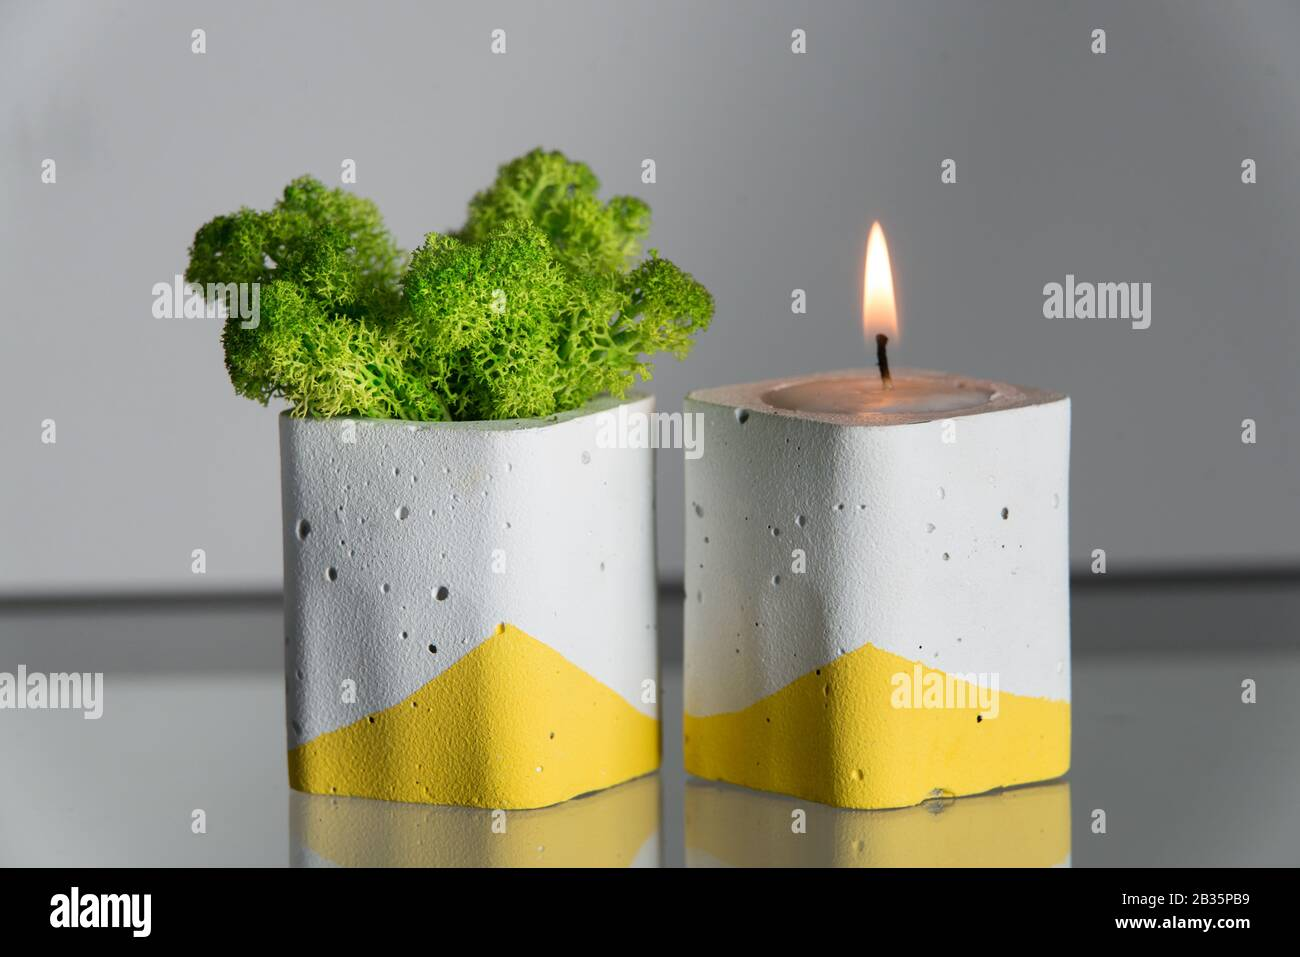 Candles And Moss In White And Yellow Concrete Candle Holders Stock Photo Alamy